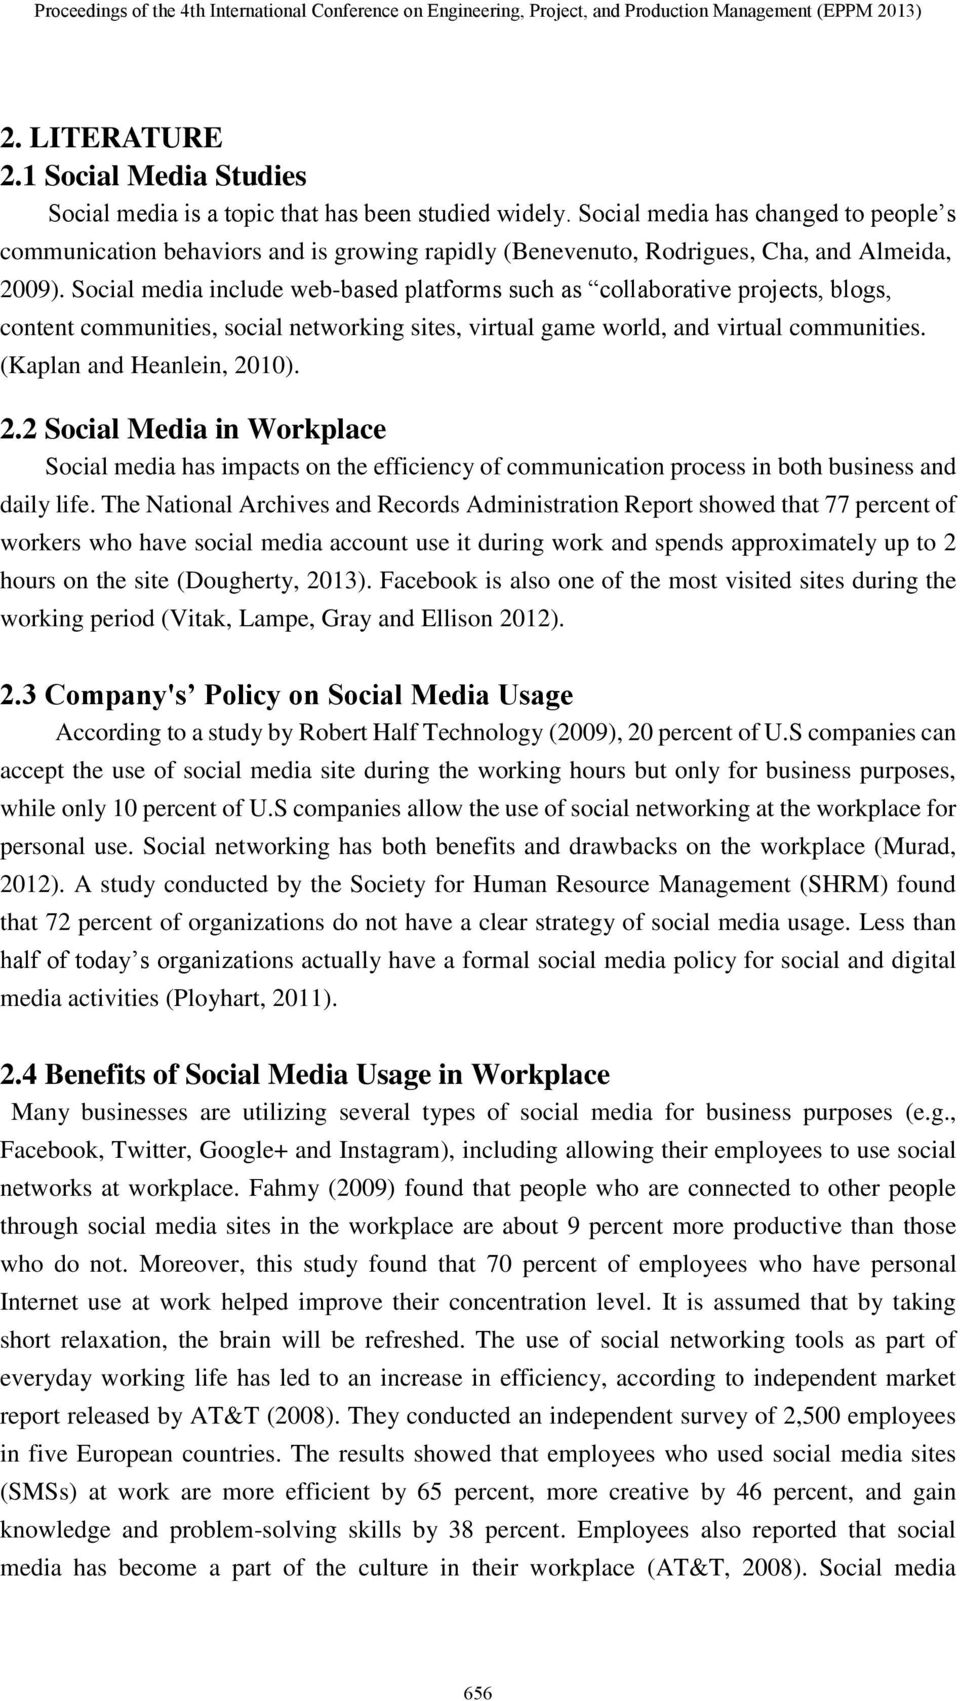 Social media include web-based platforms such as collaborative projects, blogs, content communities, social networking sites, virtual game world, and virtual communities. (Kaplan and Heanlein, 2010).